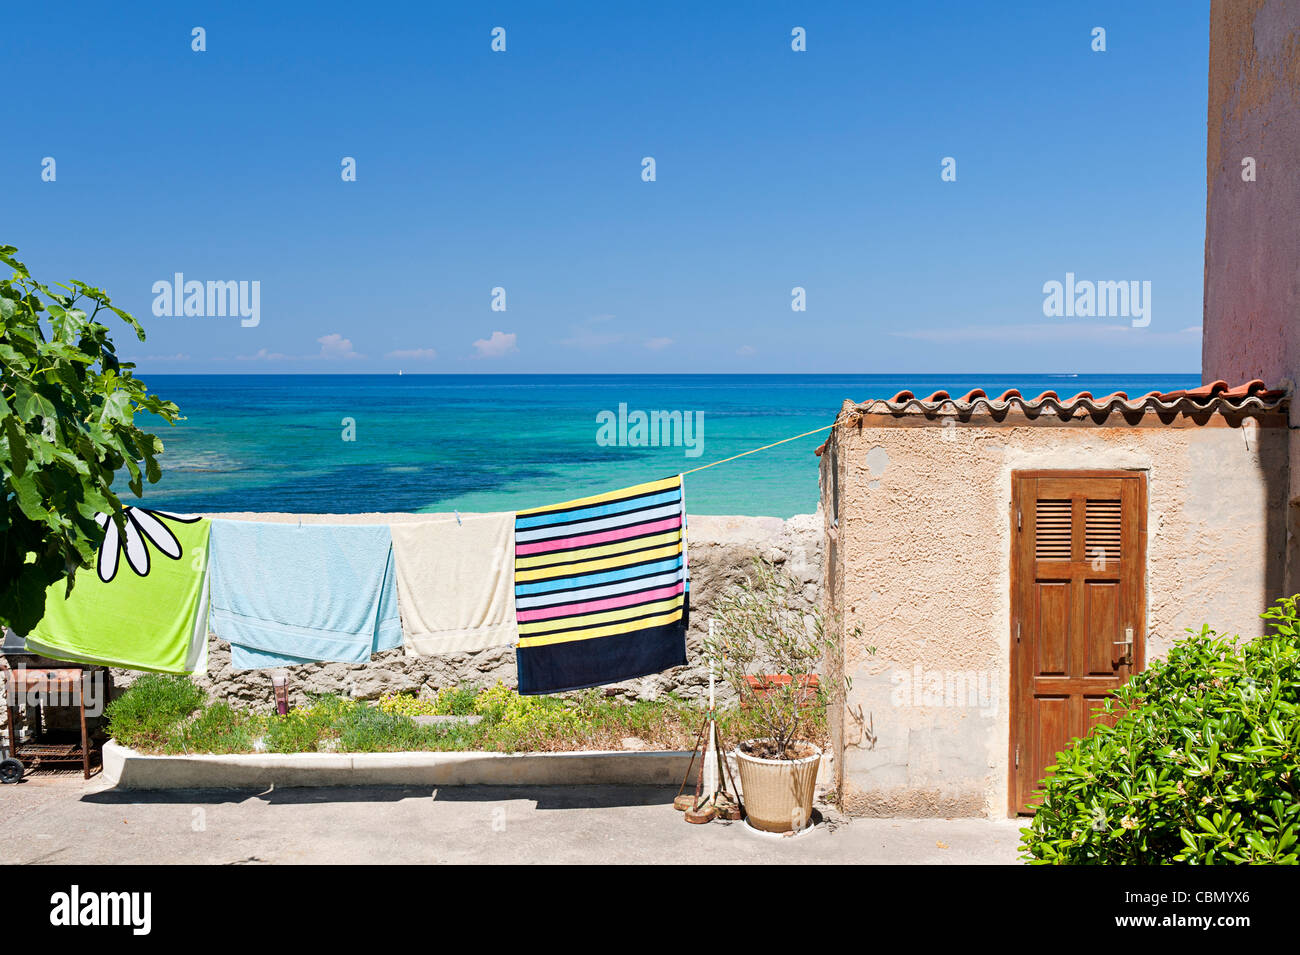 Towels on clothesline by the sea - Stock Image